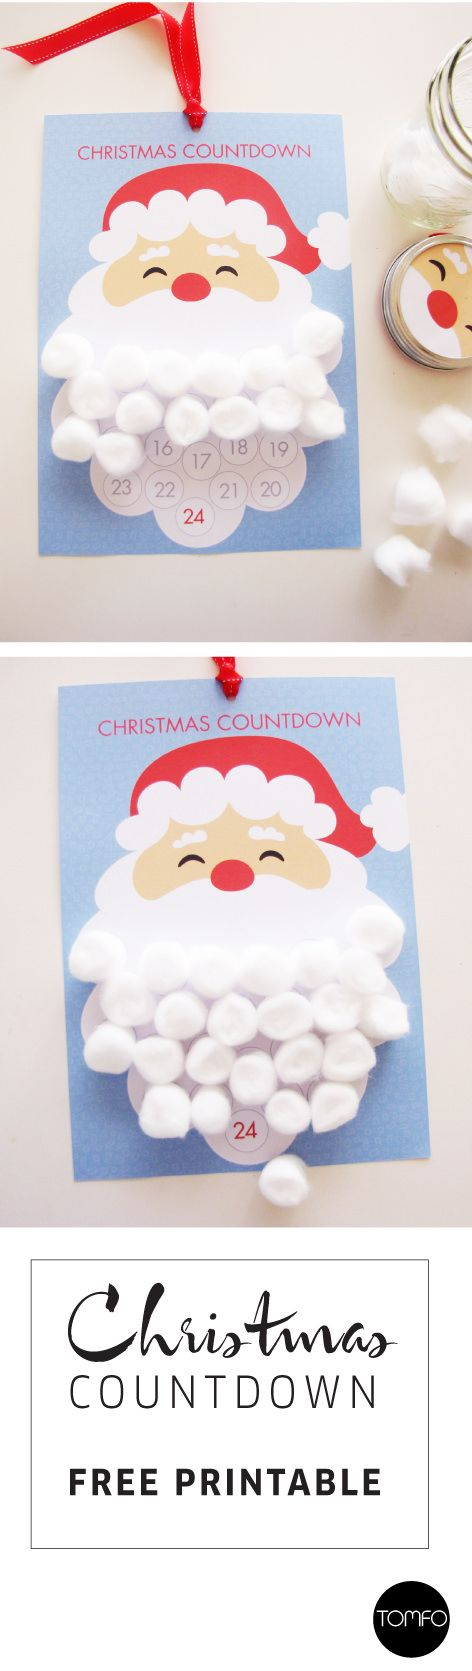 Super cute Christmas countdown for kids. Cover the numbers with marshmallows or cotton balls. Love!!